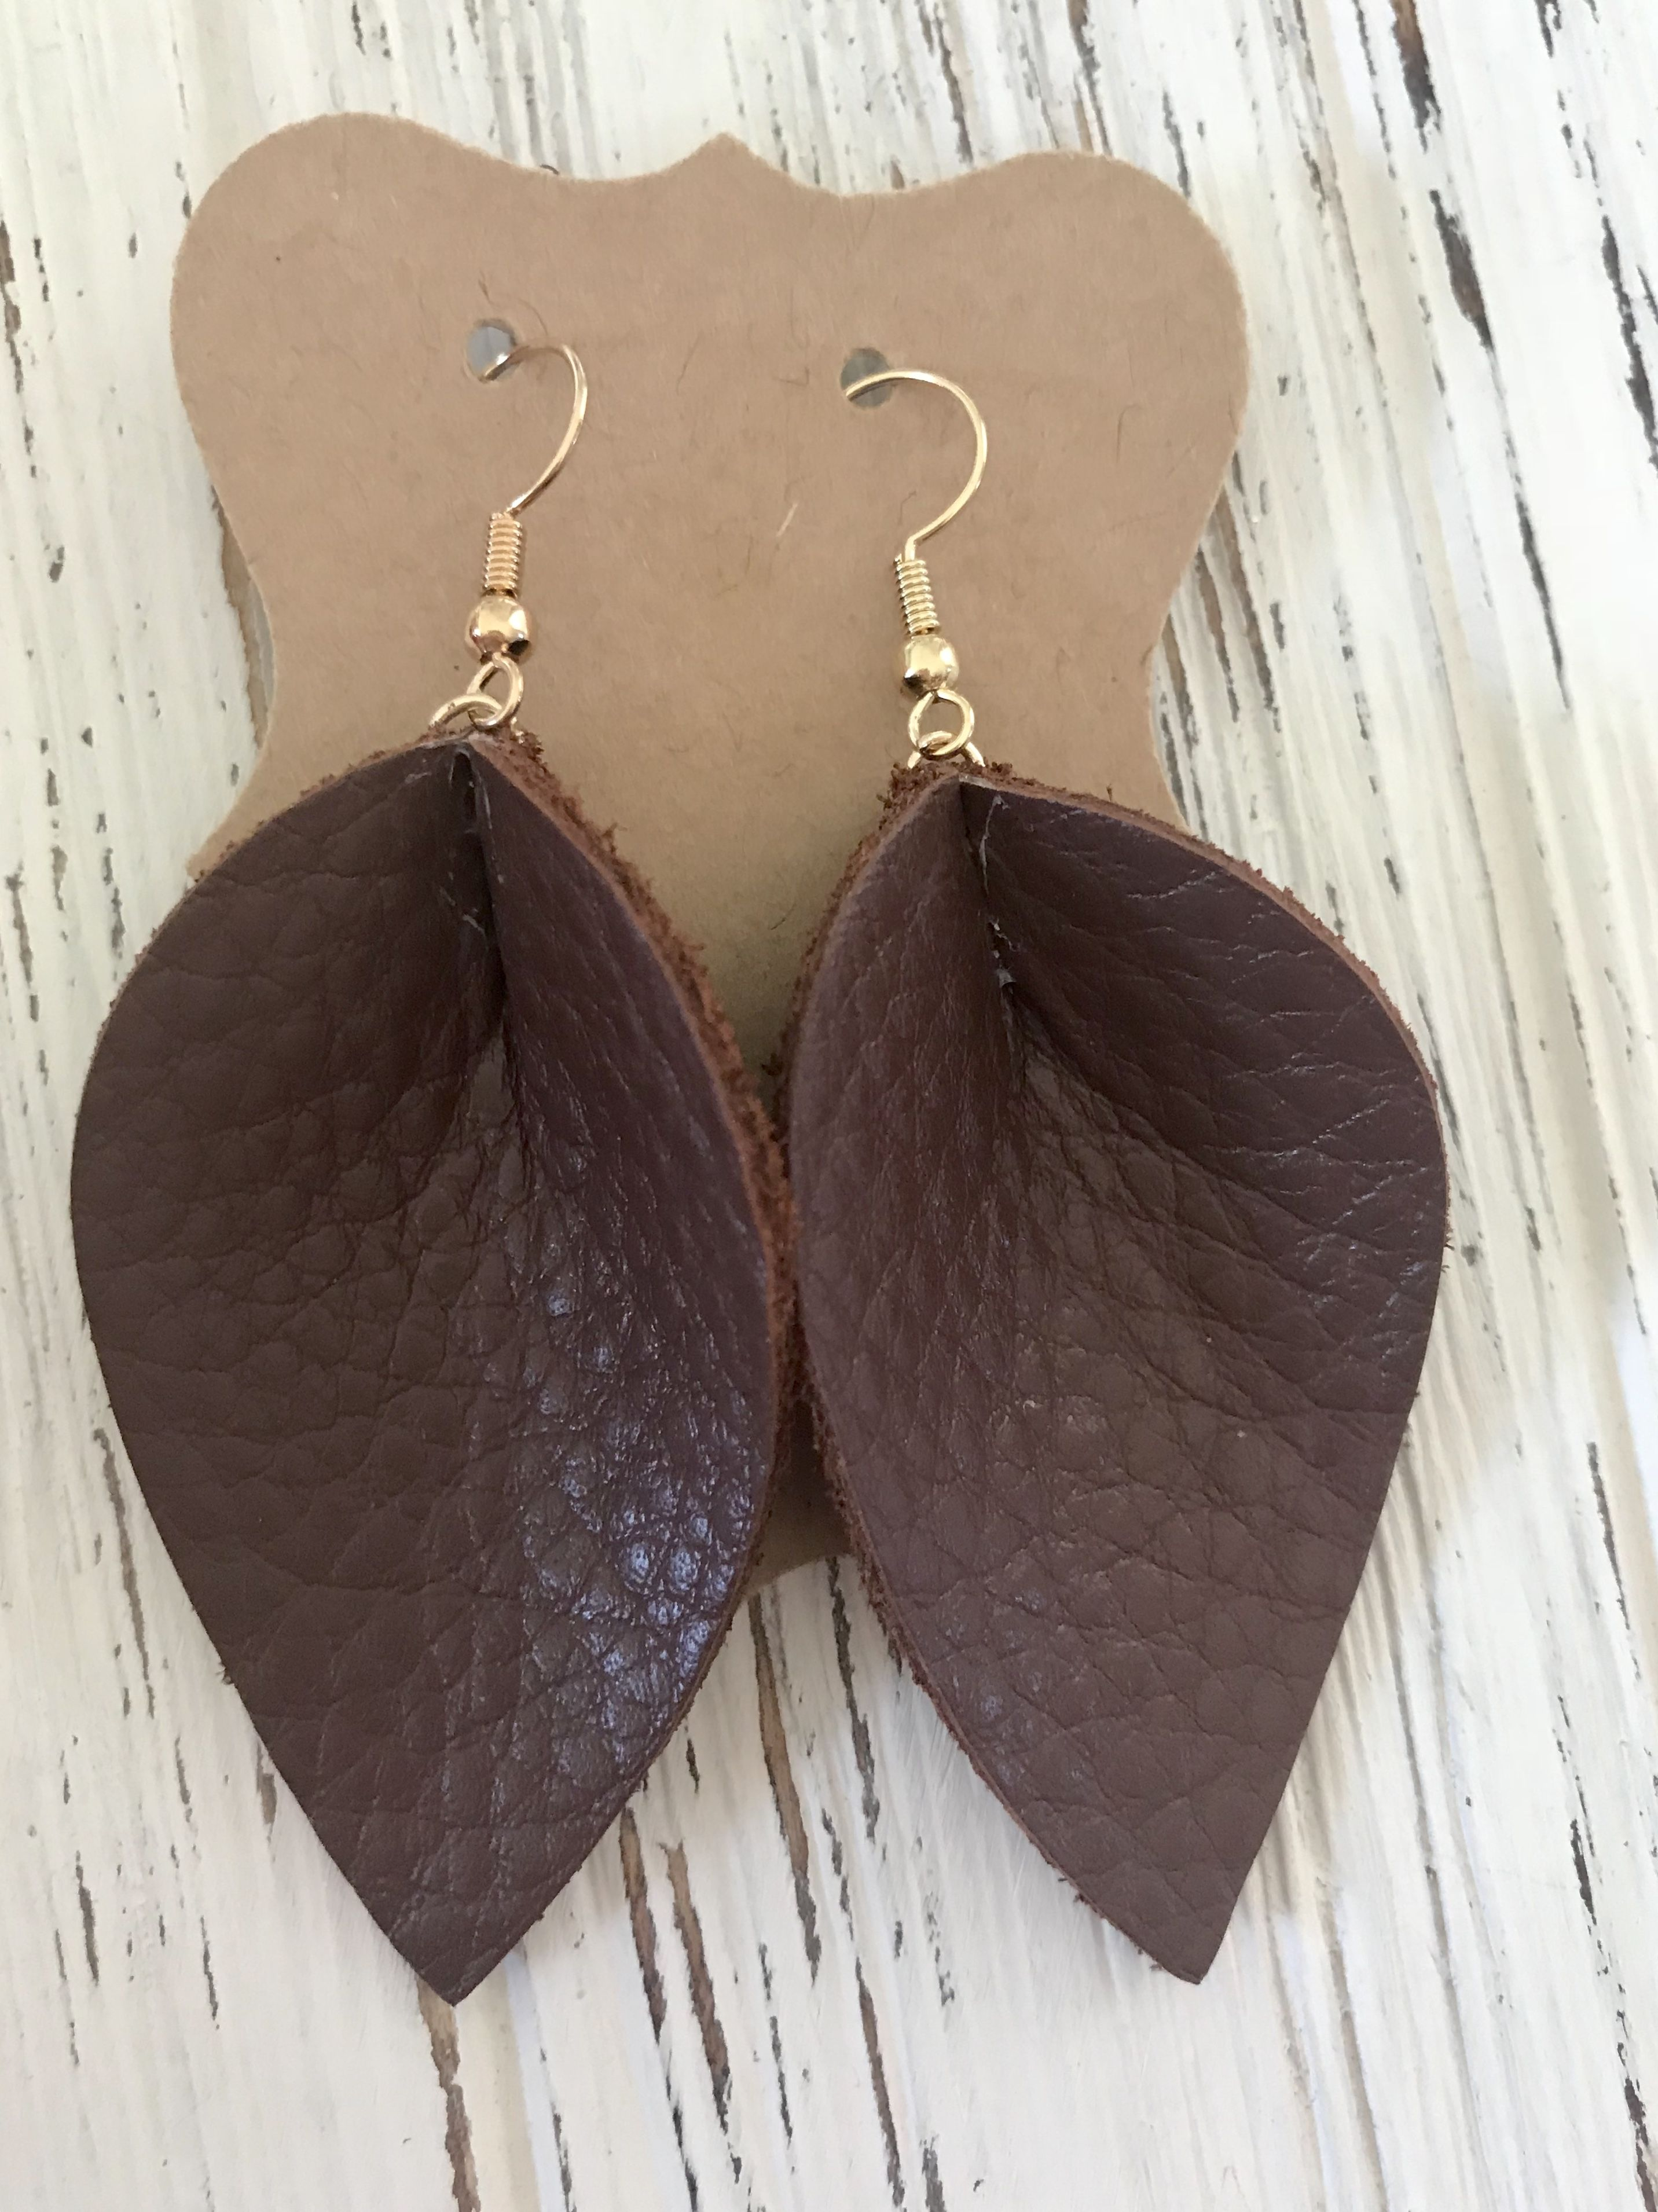 Joanna Gaines Inspired Brown Petal Leather Earrings